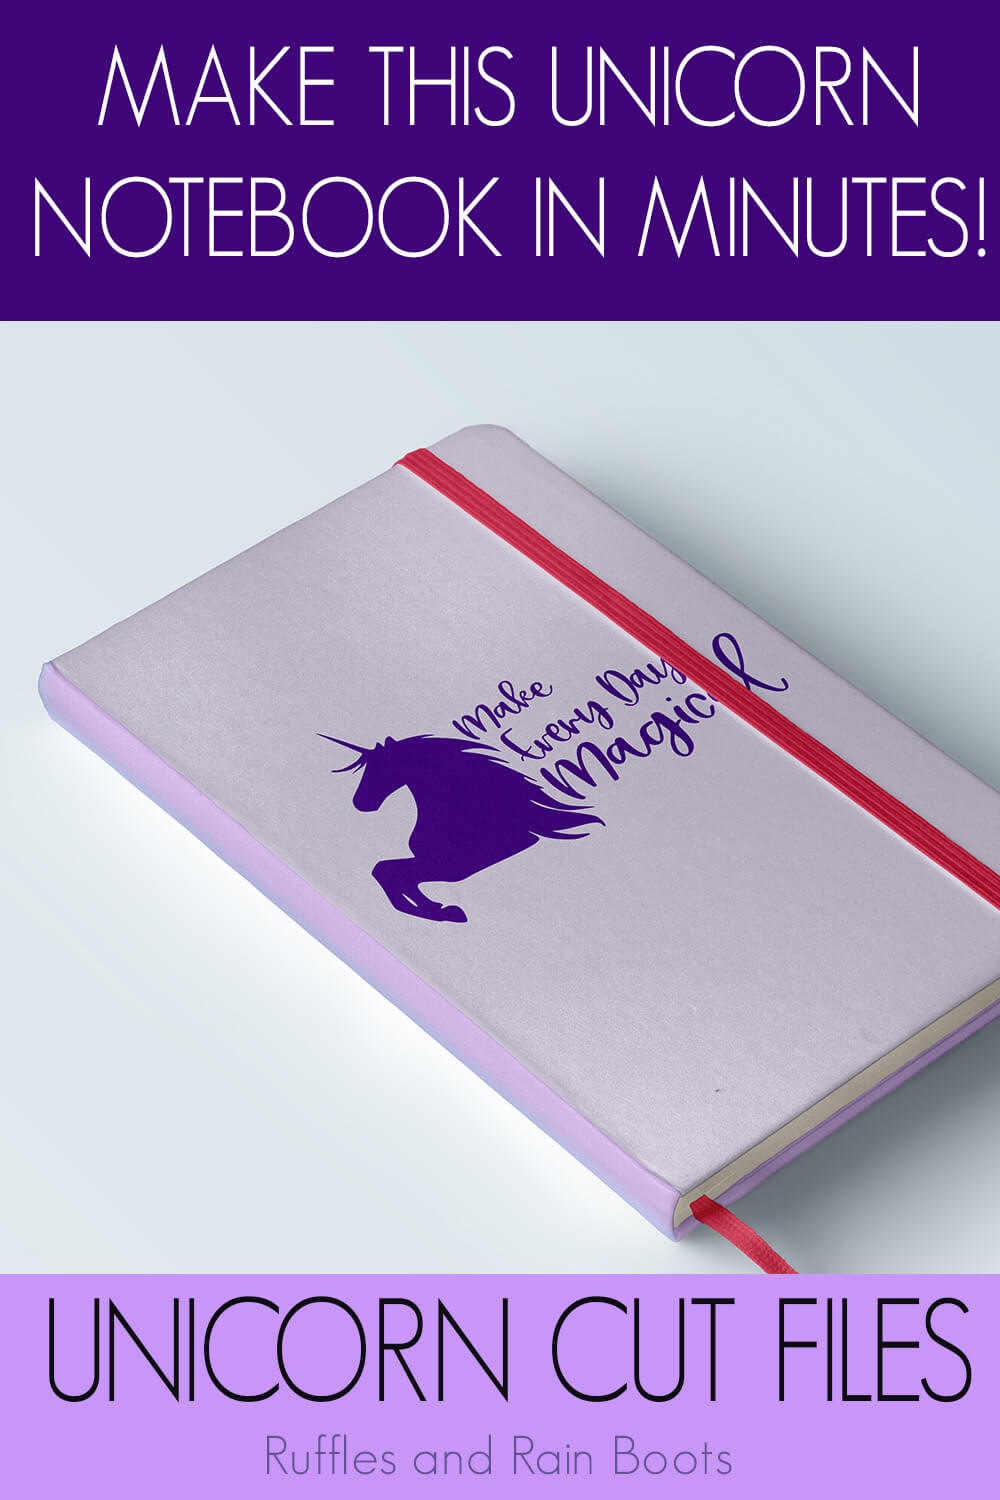 make everyday magical free unicorn svg file for silhouette on a purple notebook on a white background with text which reads make this unicorn notebook in minutes unicorn cut files